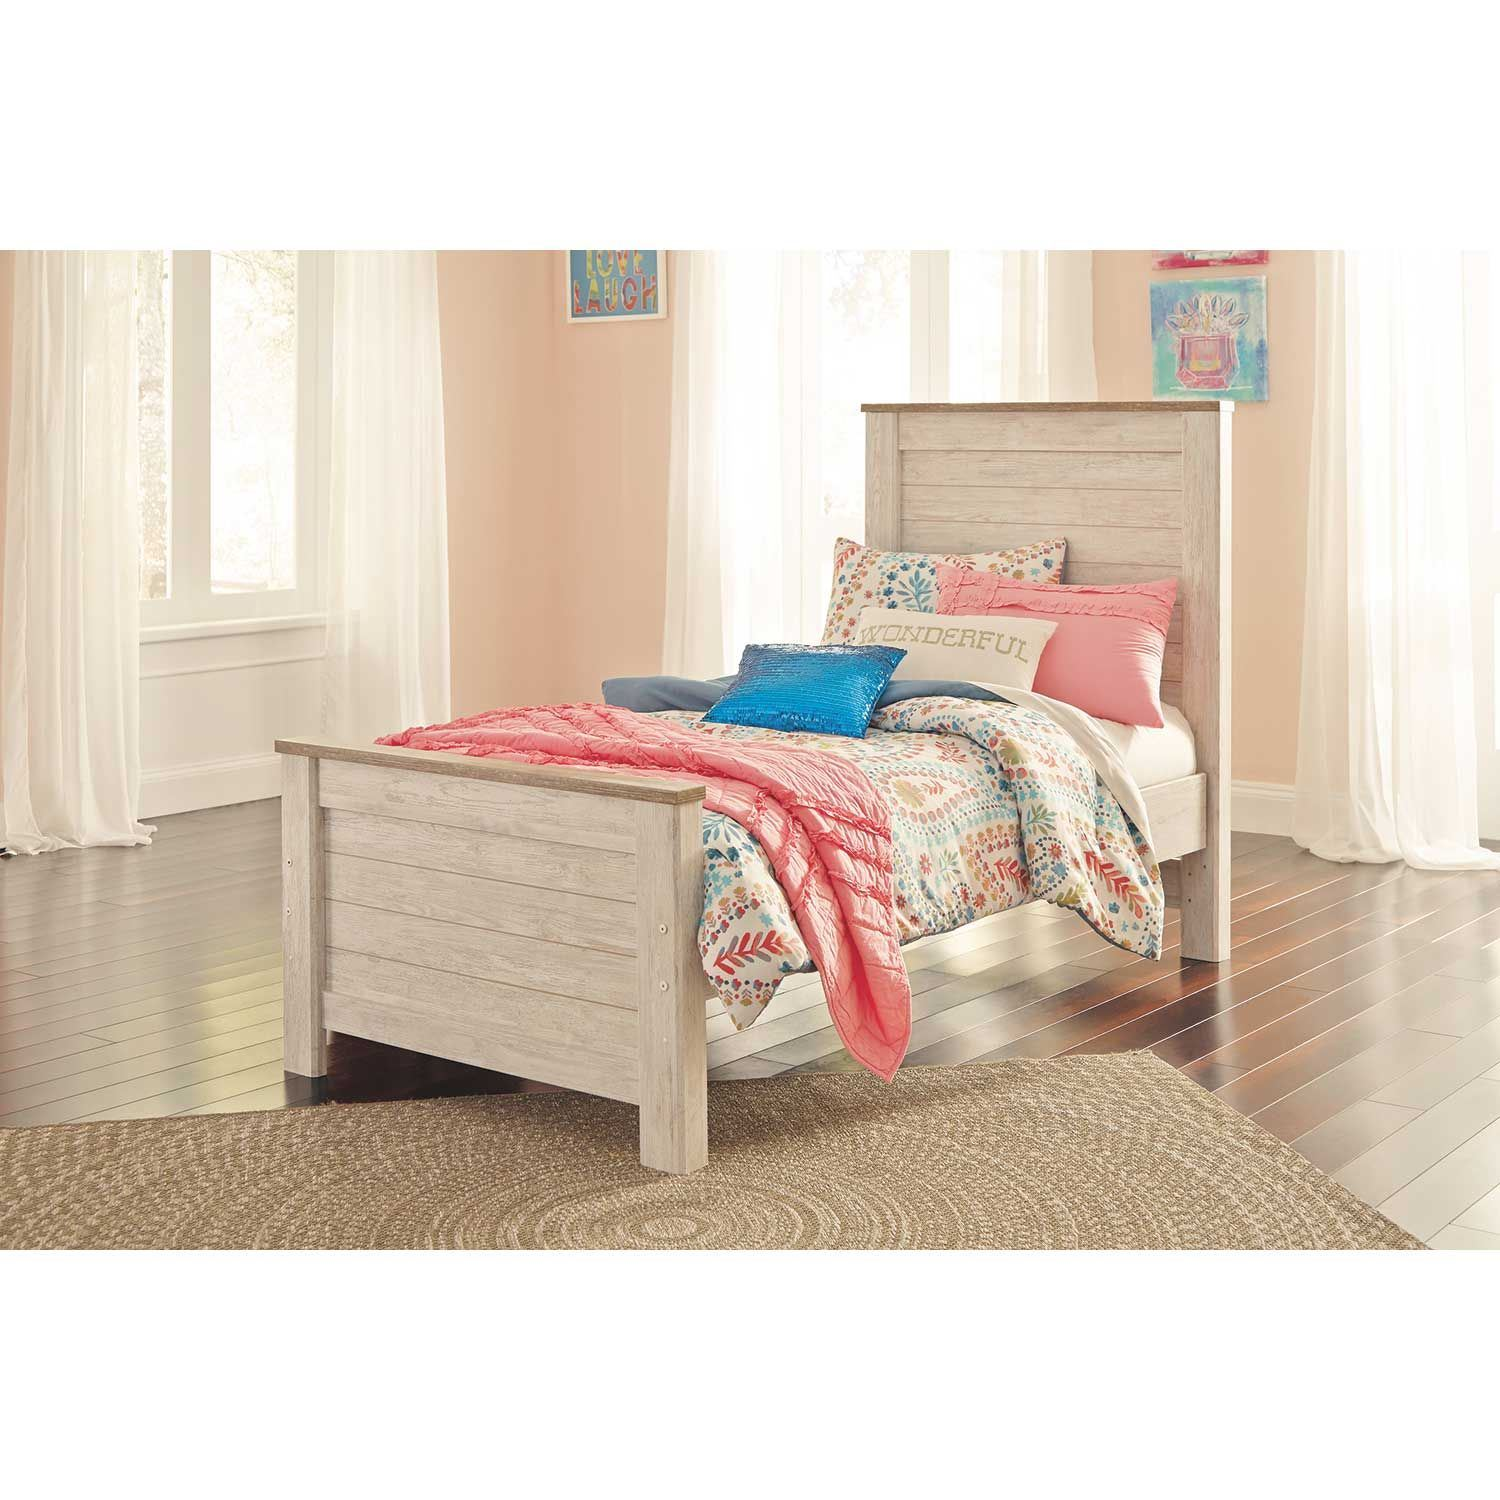 Ashley Furniture Texas Locations: Willowton Twin Panel Bed